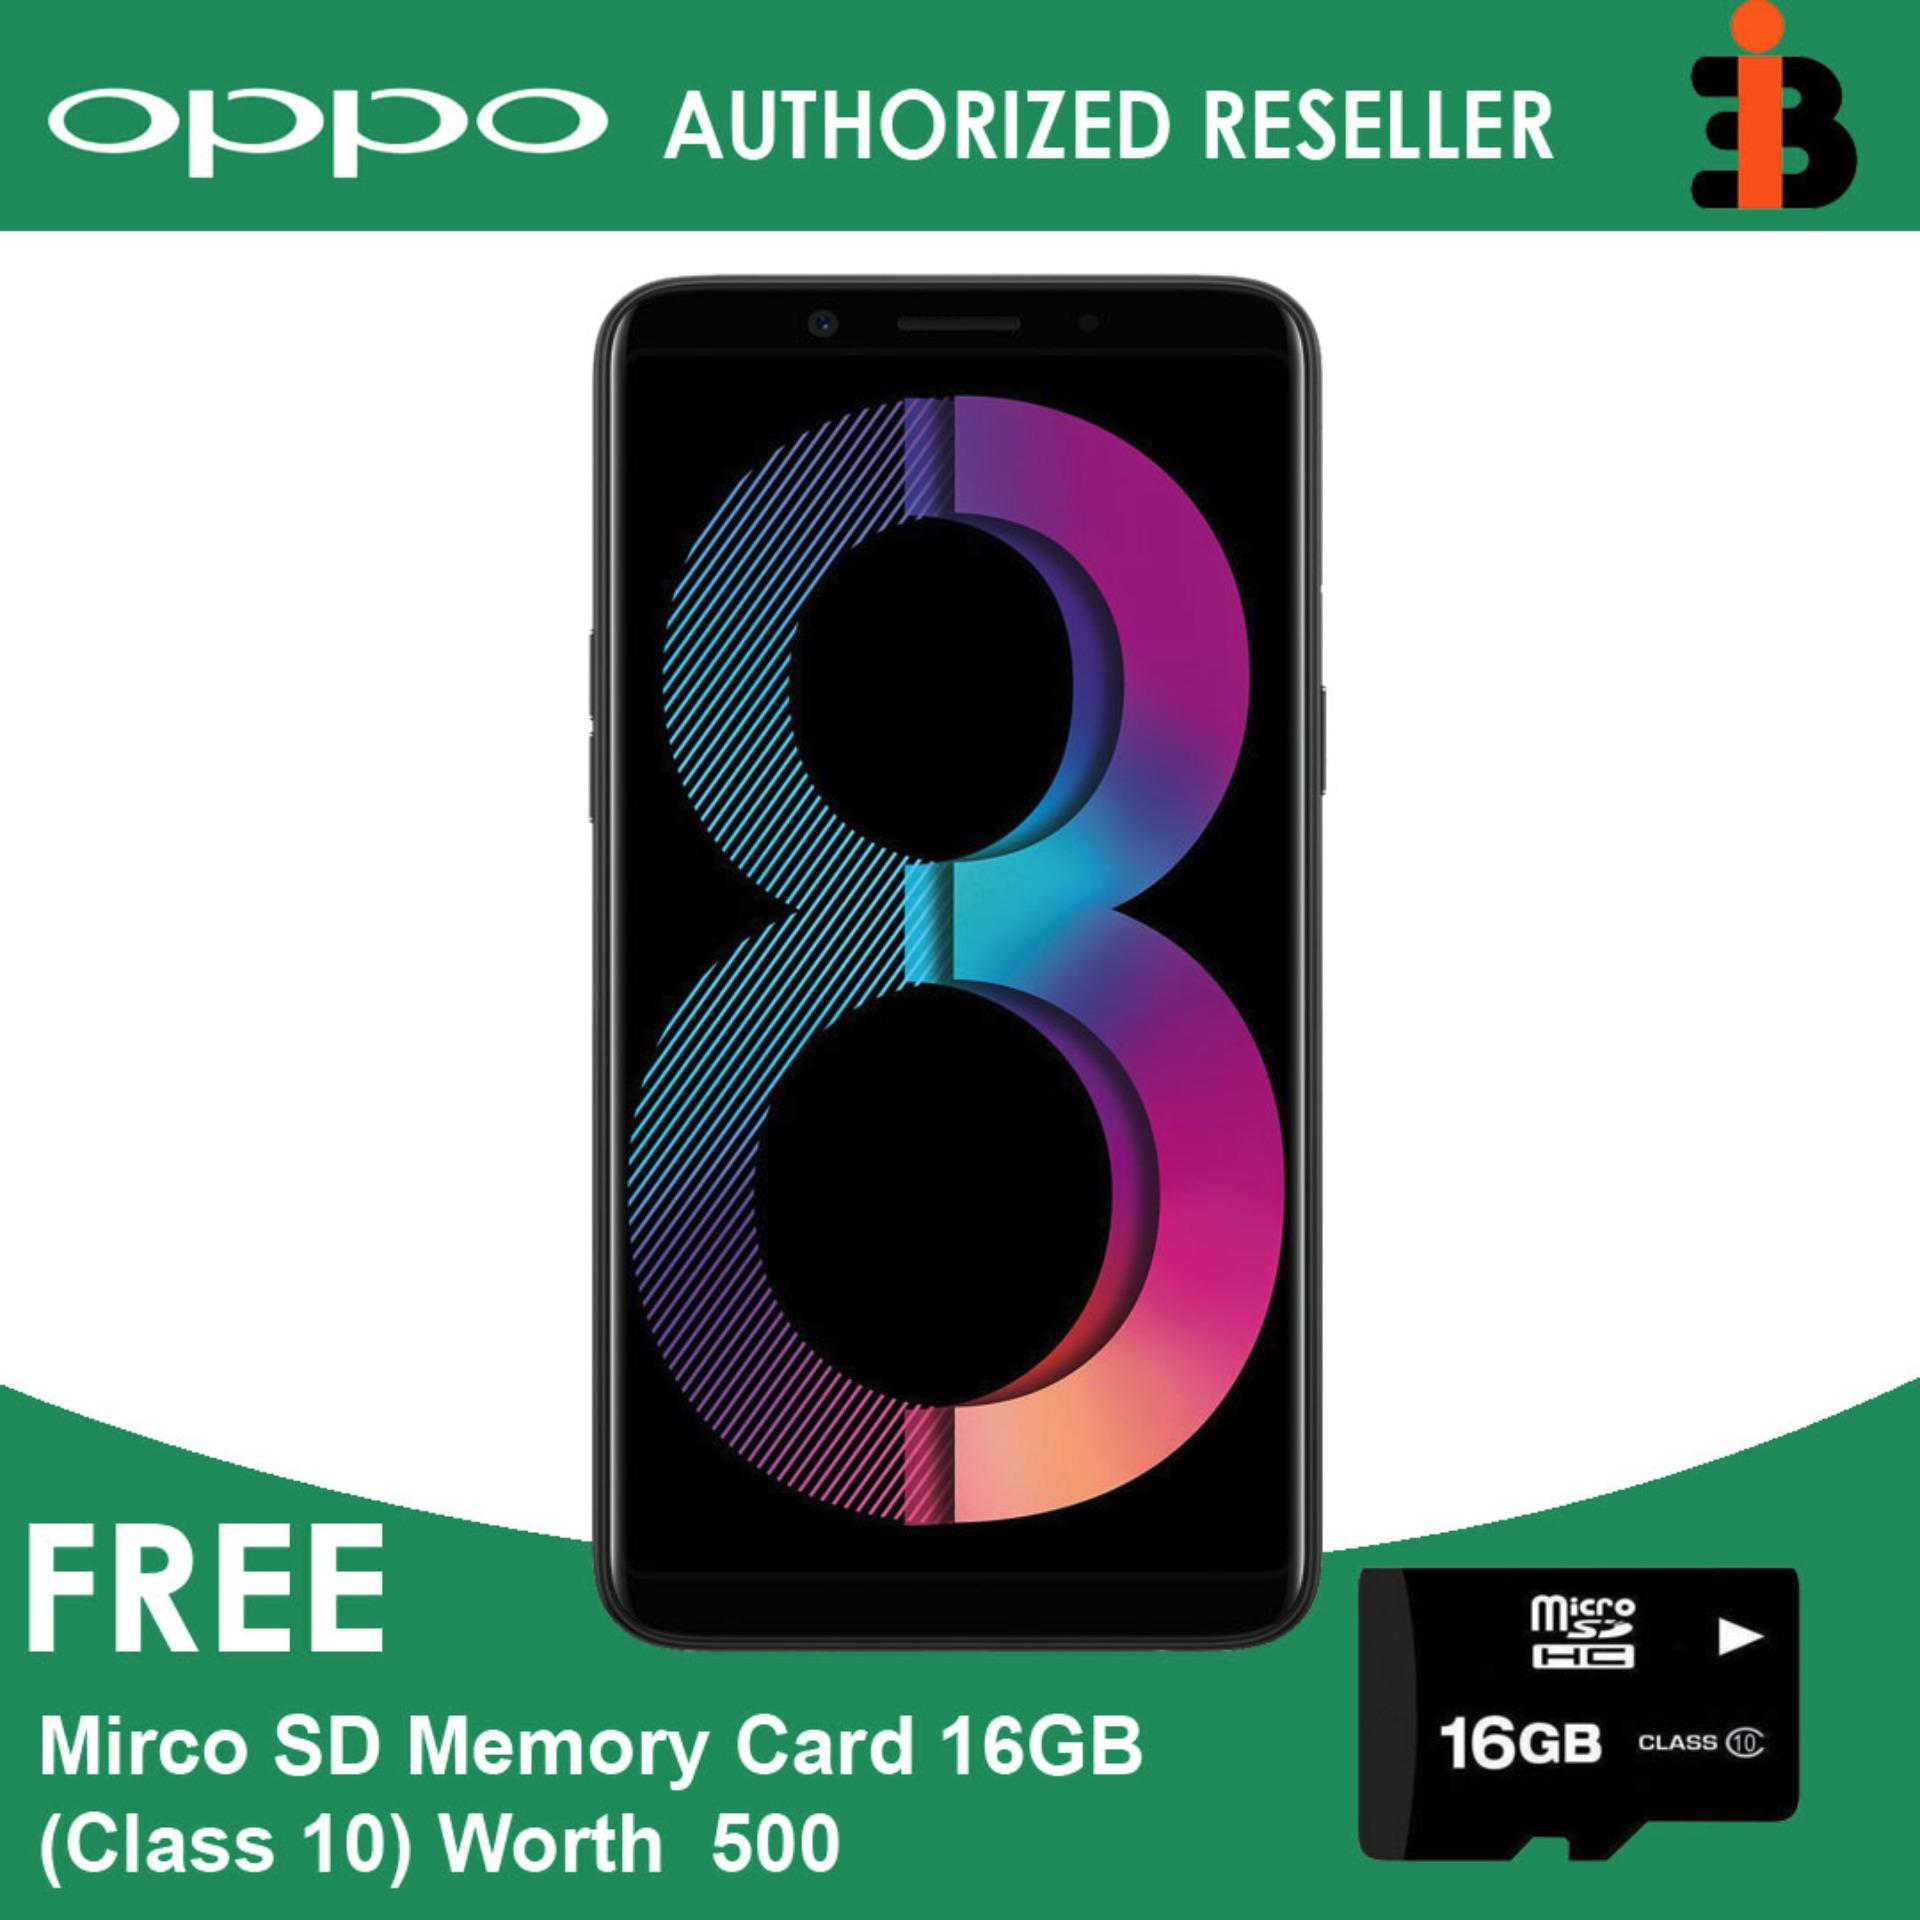 Oppo A83 5 7 inch 32GBROM+3GBRAM 13MP Back 8Mp Front Nougat 7 1 Mediatek  MT6763T Helio P23 Octa-Core 3180 mah 1 Year Local Warranty Authentic Dual  Sim